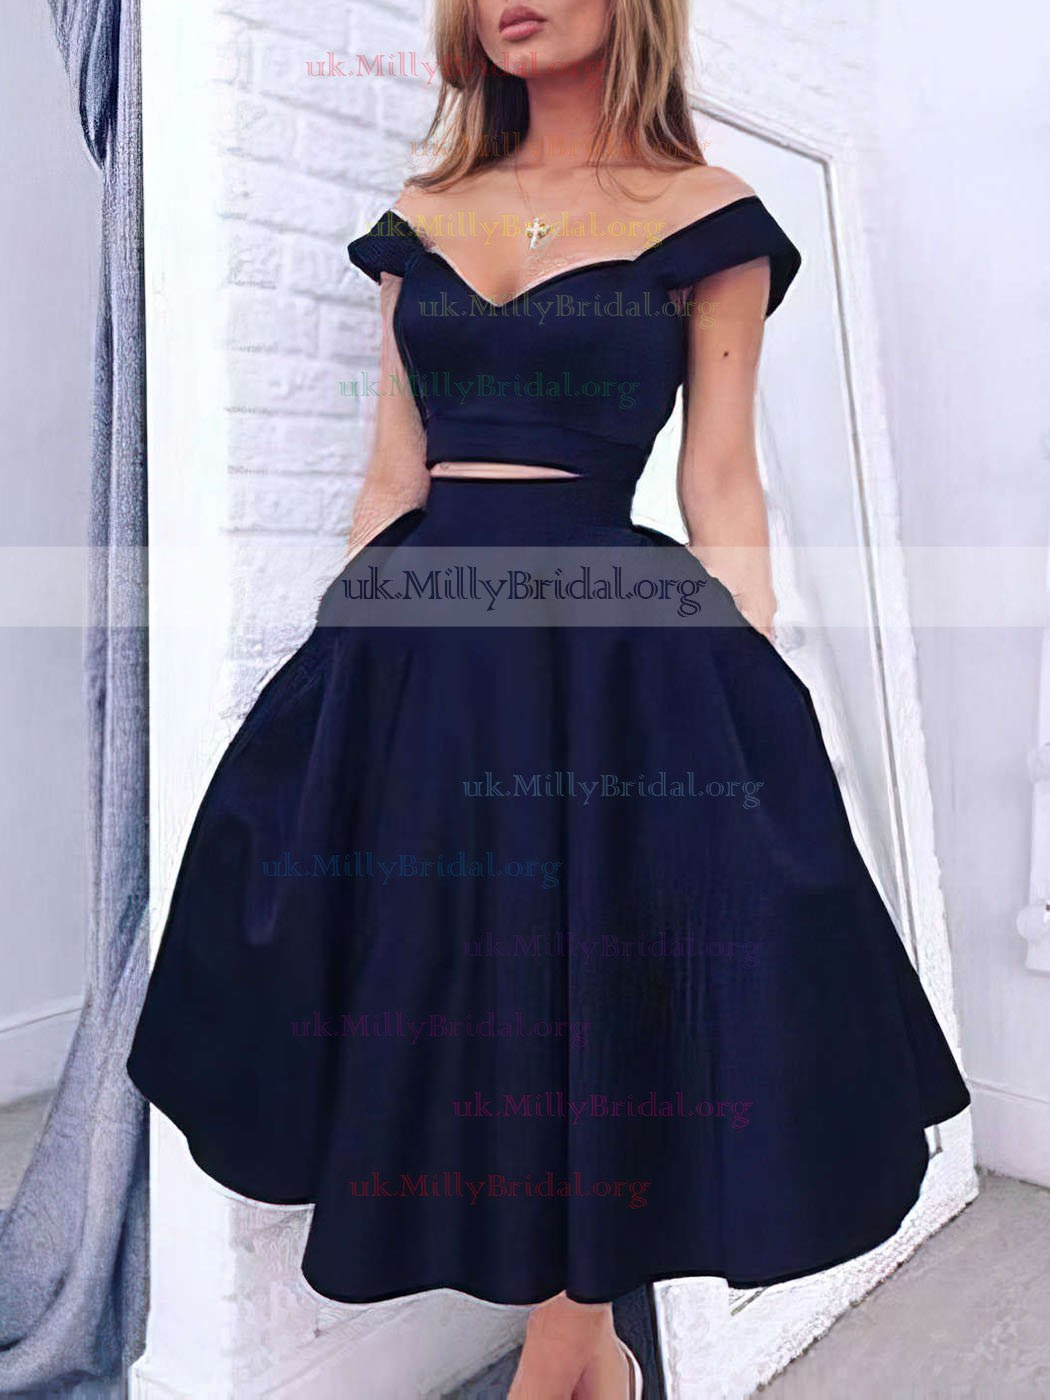 http://uk.millybridal.org/product/a-line-off-the-shoulder-dark-navy-satin-tea-length-two-piece-prom-dresses-ukm020102596-17418.html?utm_source=minipost&utm_medium=1023&utm_campaign=blog